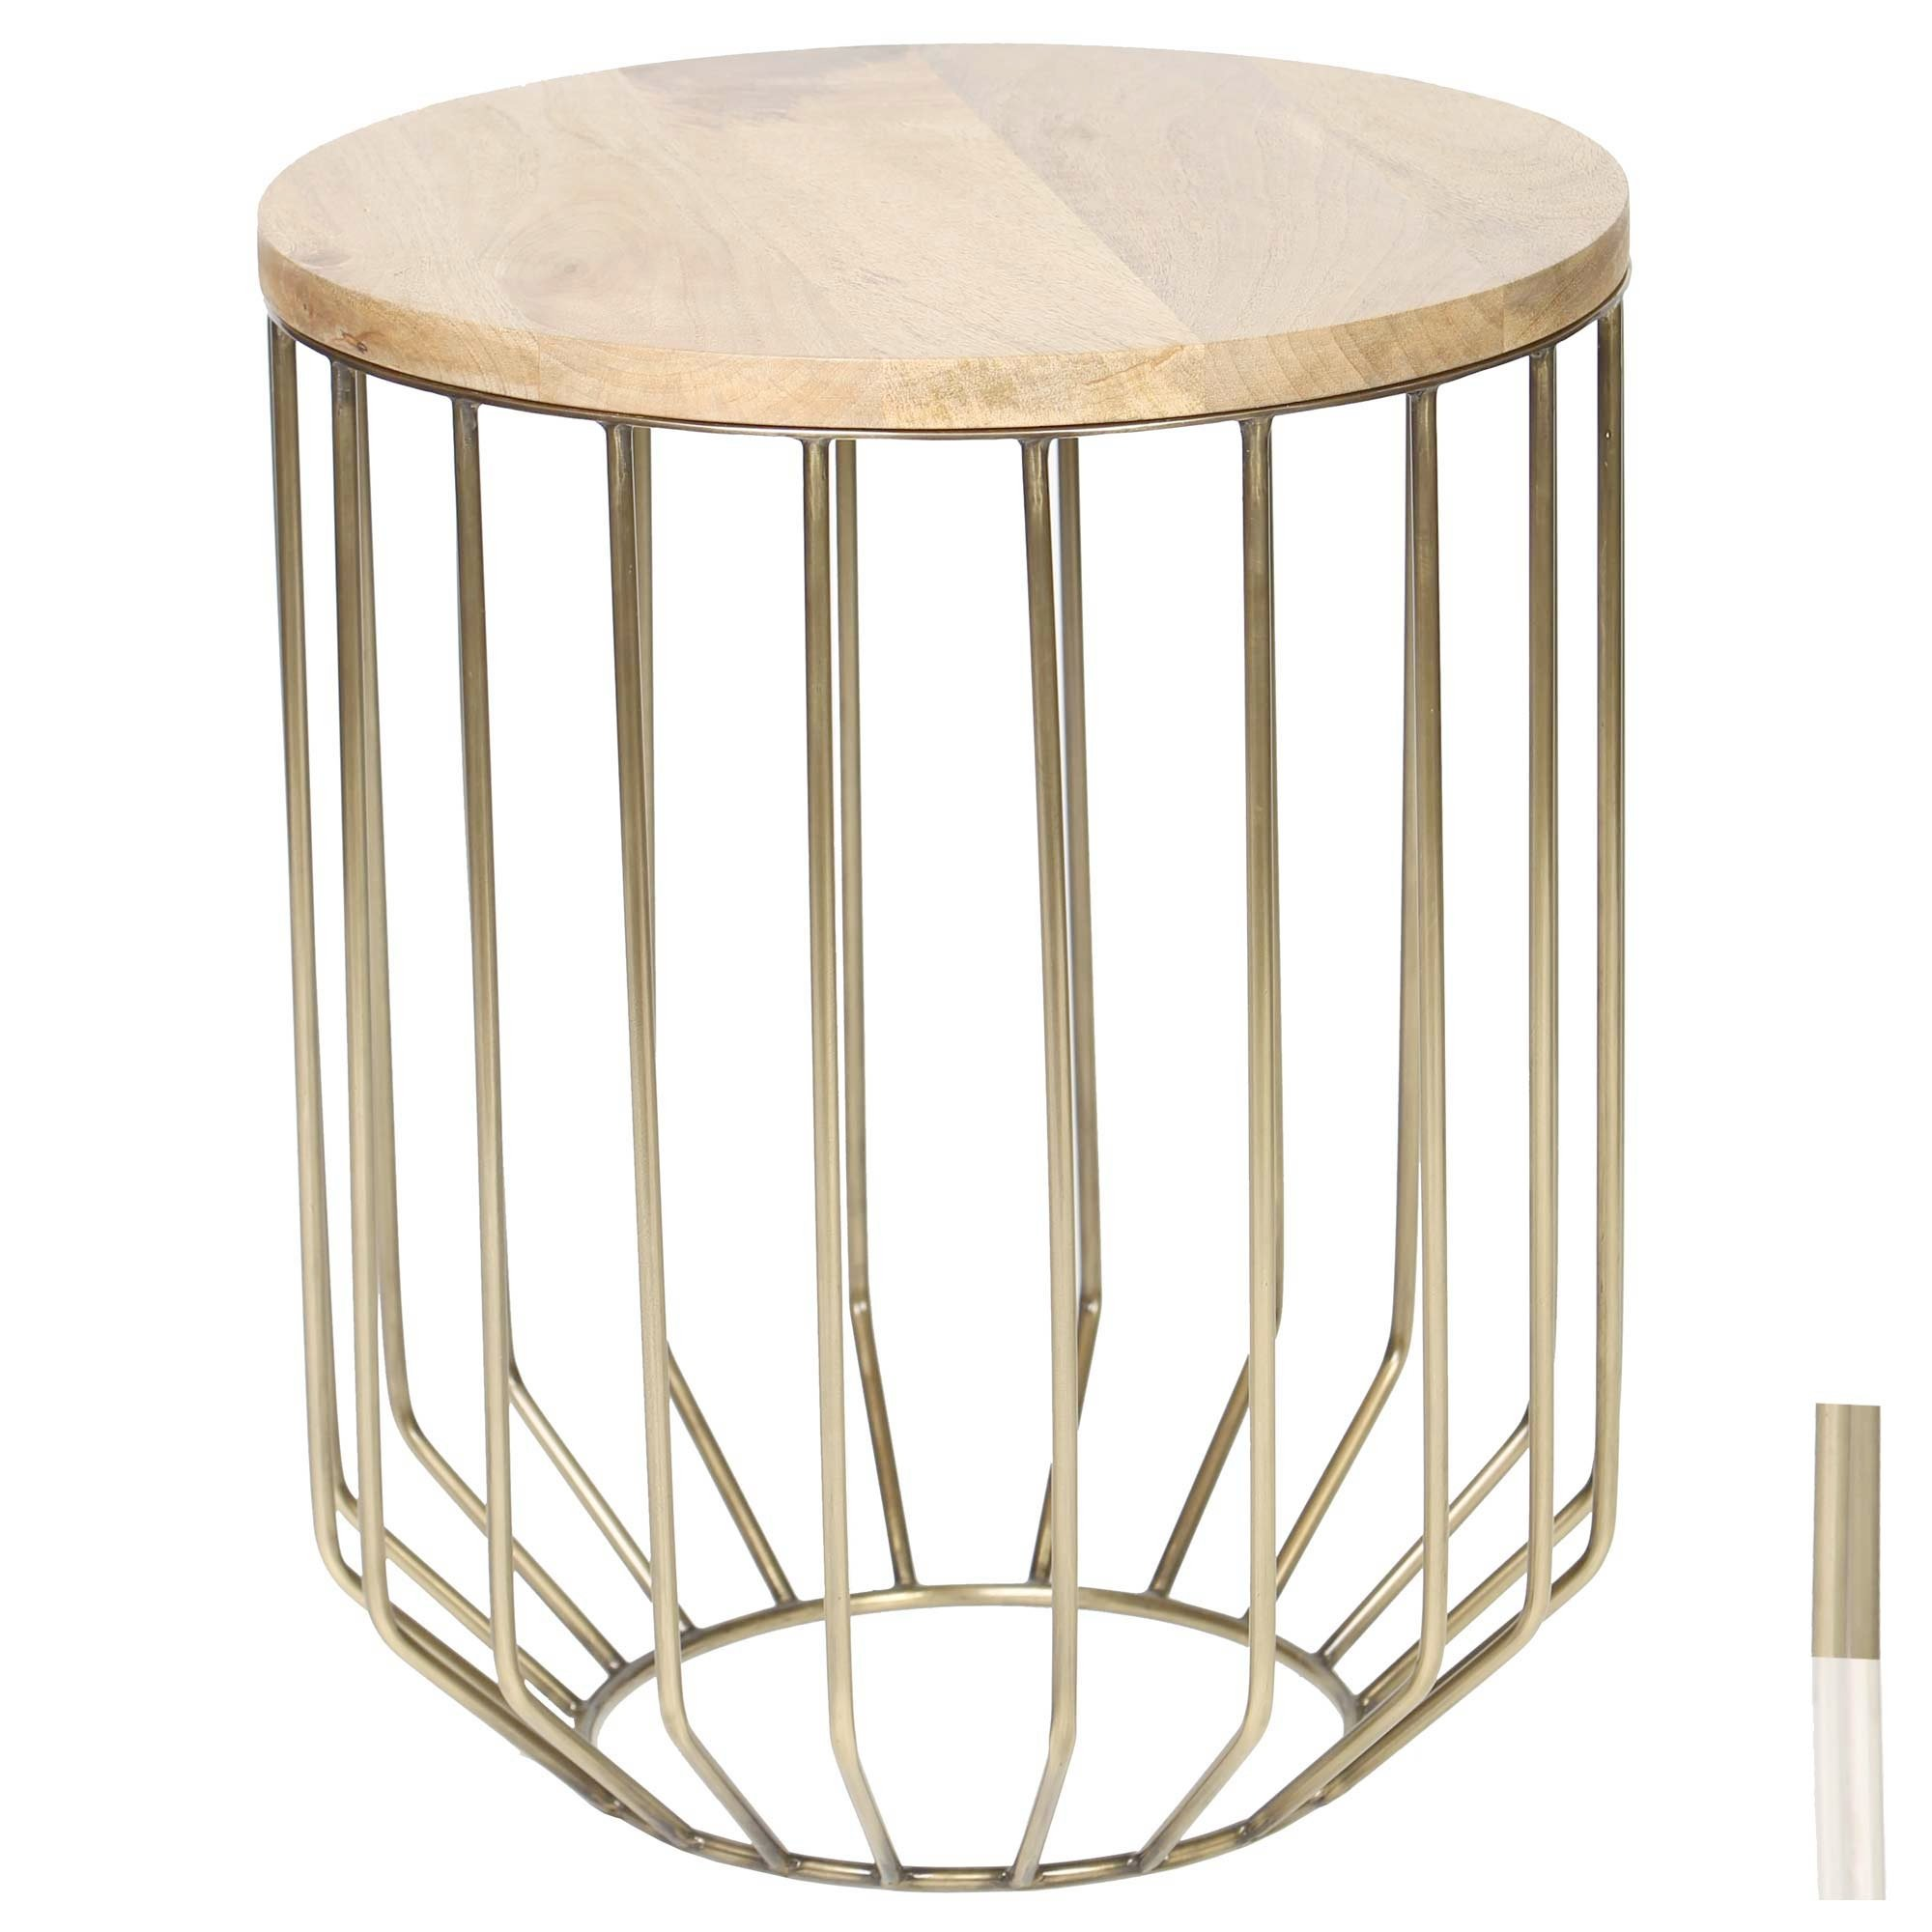 nice iron accent tables tured the wire frame table which features mango wood top and home goods youth furniture colorful lamps windham party bucket porcelain lamp mimosa outdoor